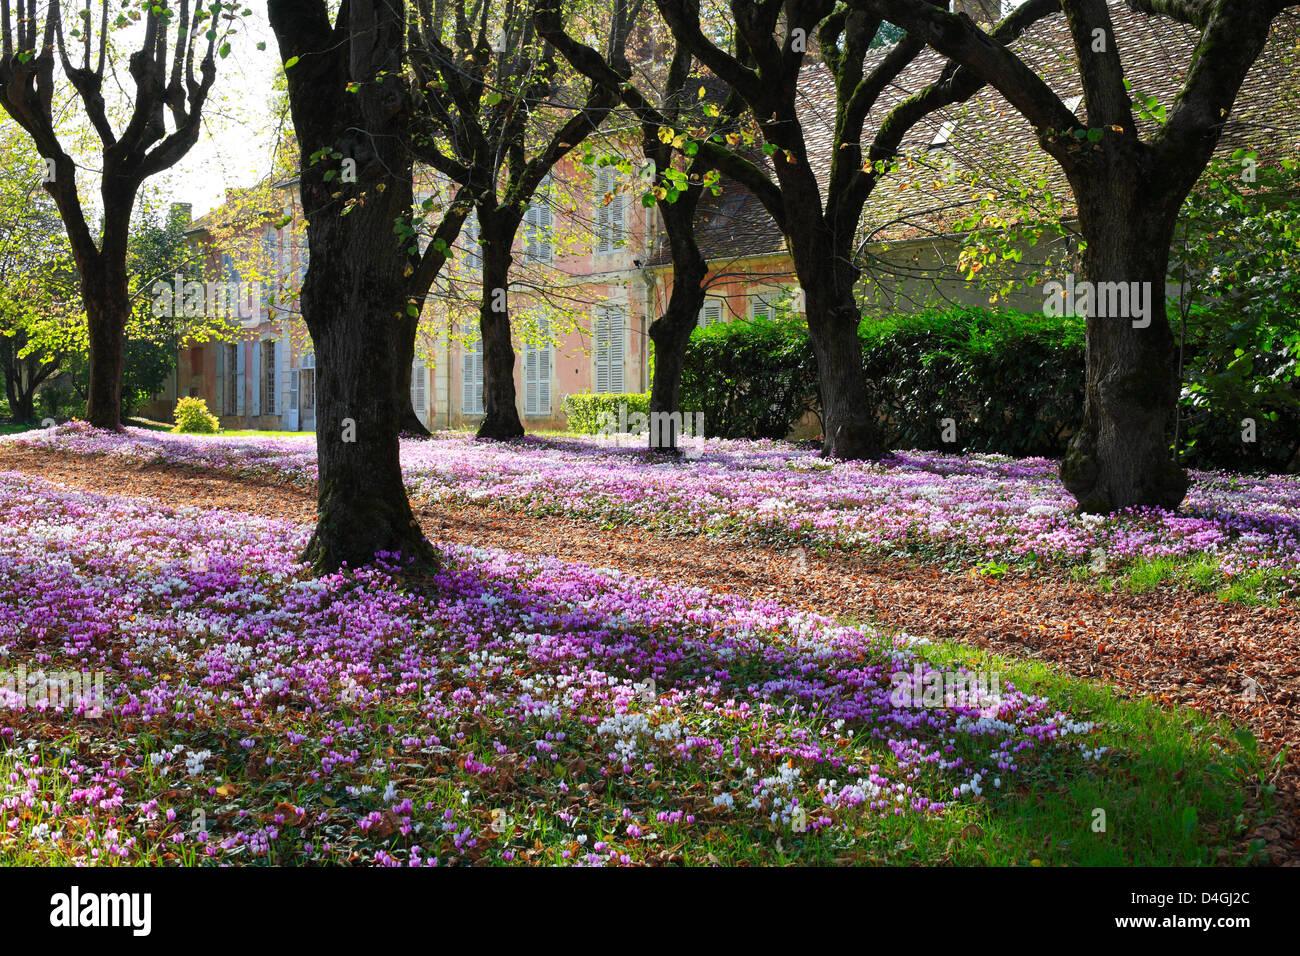 Cyclamen hederifolium Carpet of Flowers in a French Garden Stock